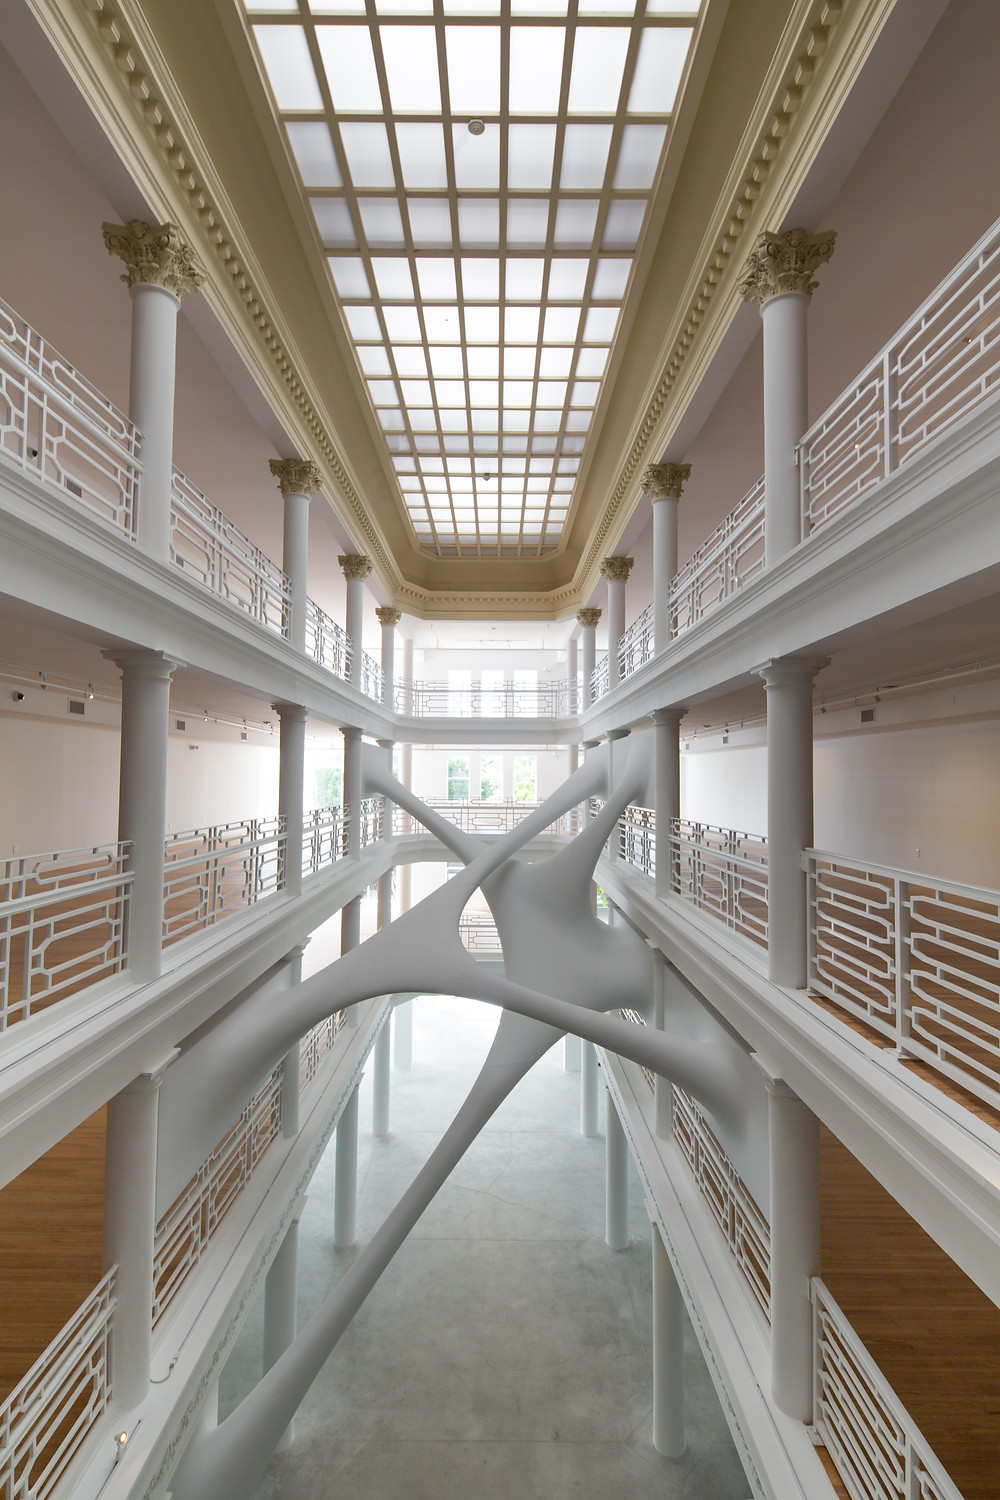 Four story atrium with glass ceiling, white columns and rails, light pink walls, concrete floor and abstract art in the middle. Moore Building Elastika by Zaha Hadid: Courtesy of Luis Gomez